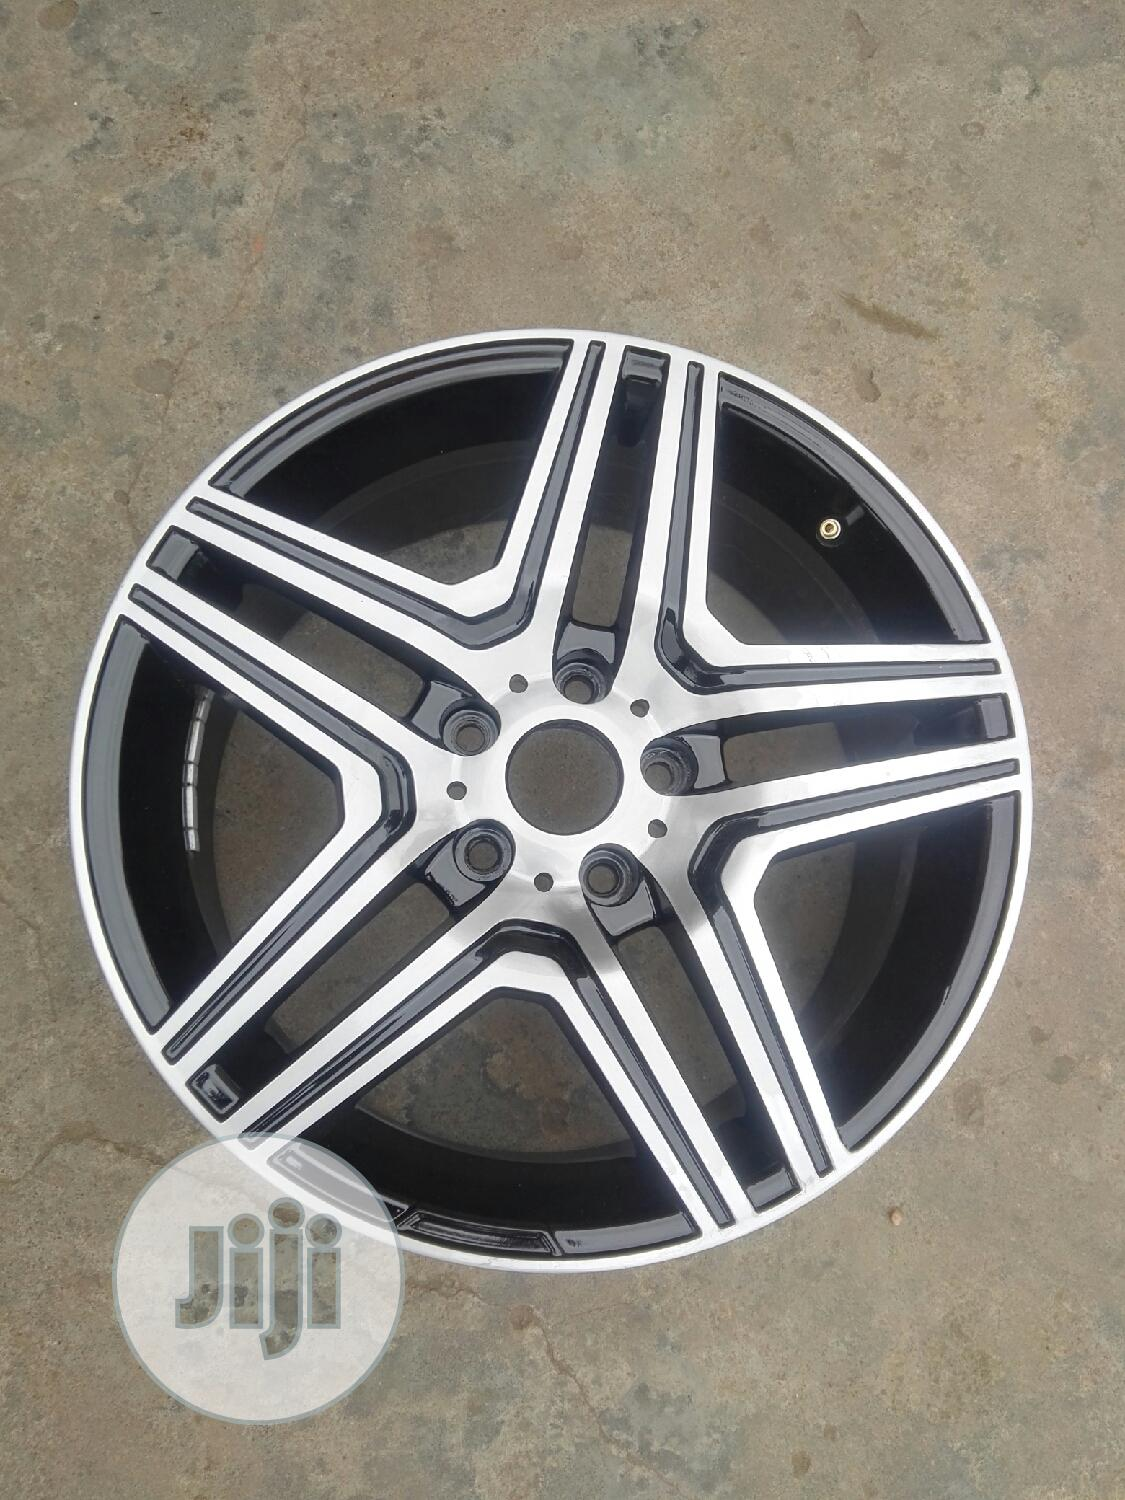 Original Alloy Rims And Tires | Vehicle Parts & Accessories for sale in Ikotun/Igando, Lagos State, Nigeria